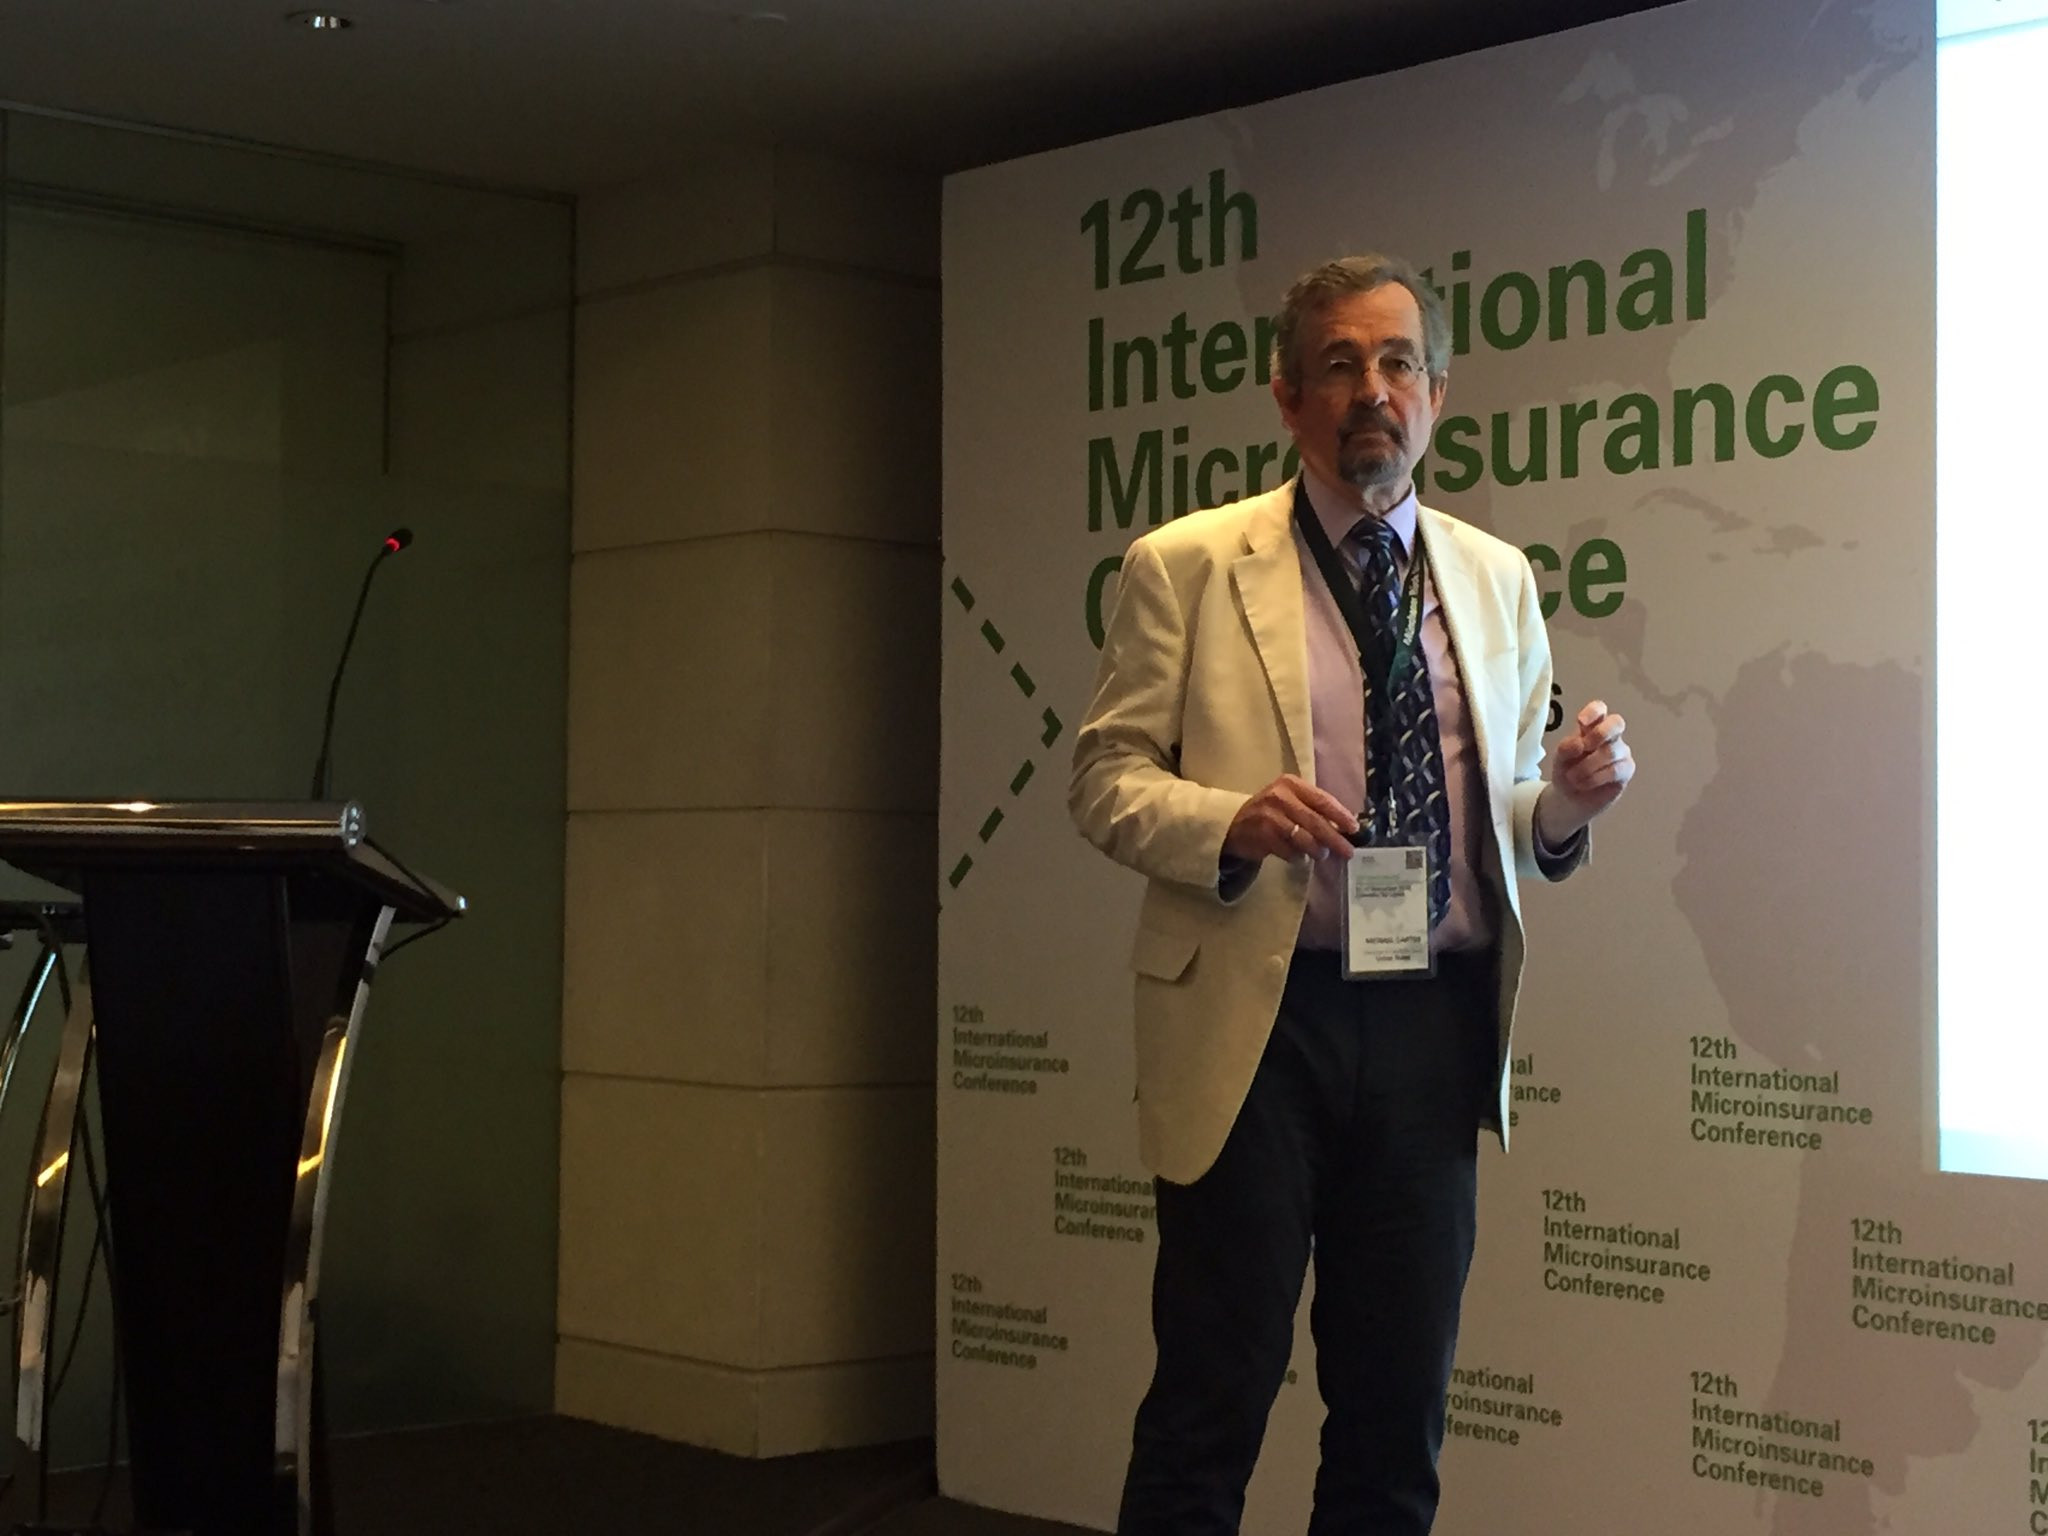 Michael Carter @ #12thIMC: When fighting poverty, think about how people became poor #CEAR #microinsurance https://t.co/Ndu3c9WhHK